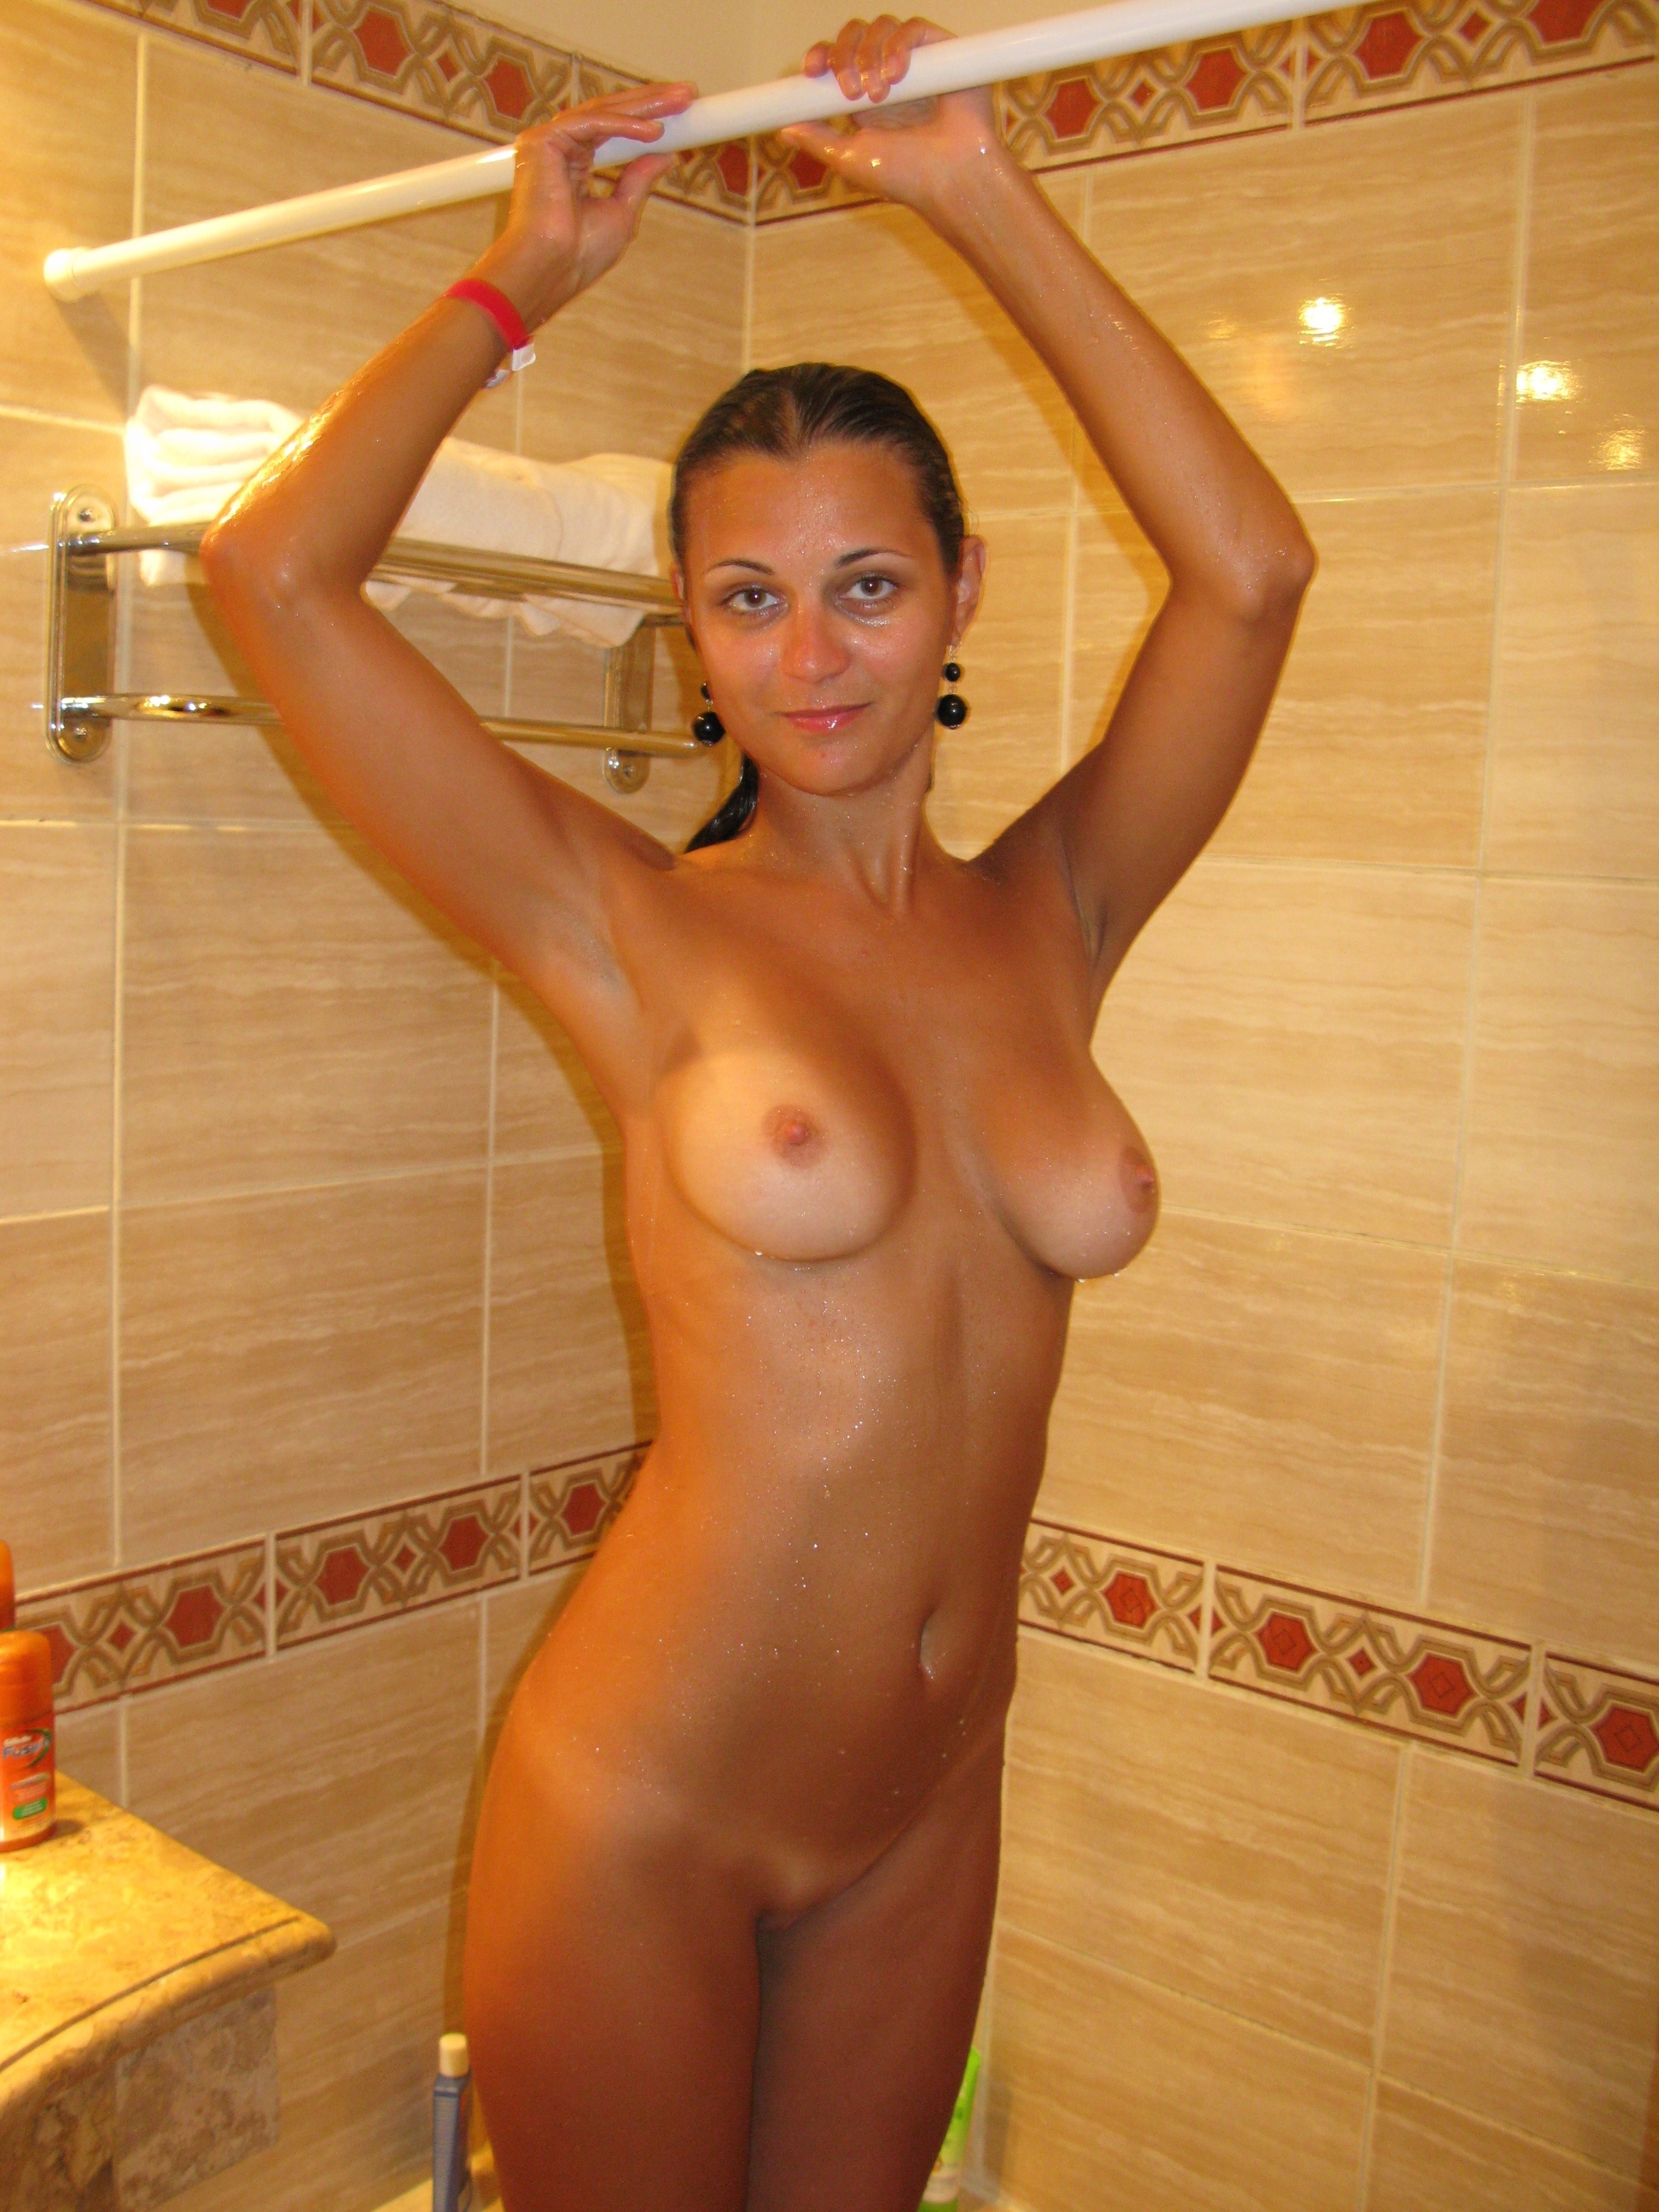 Amateur body female nude photo